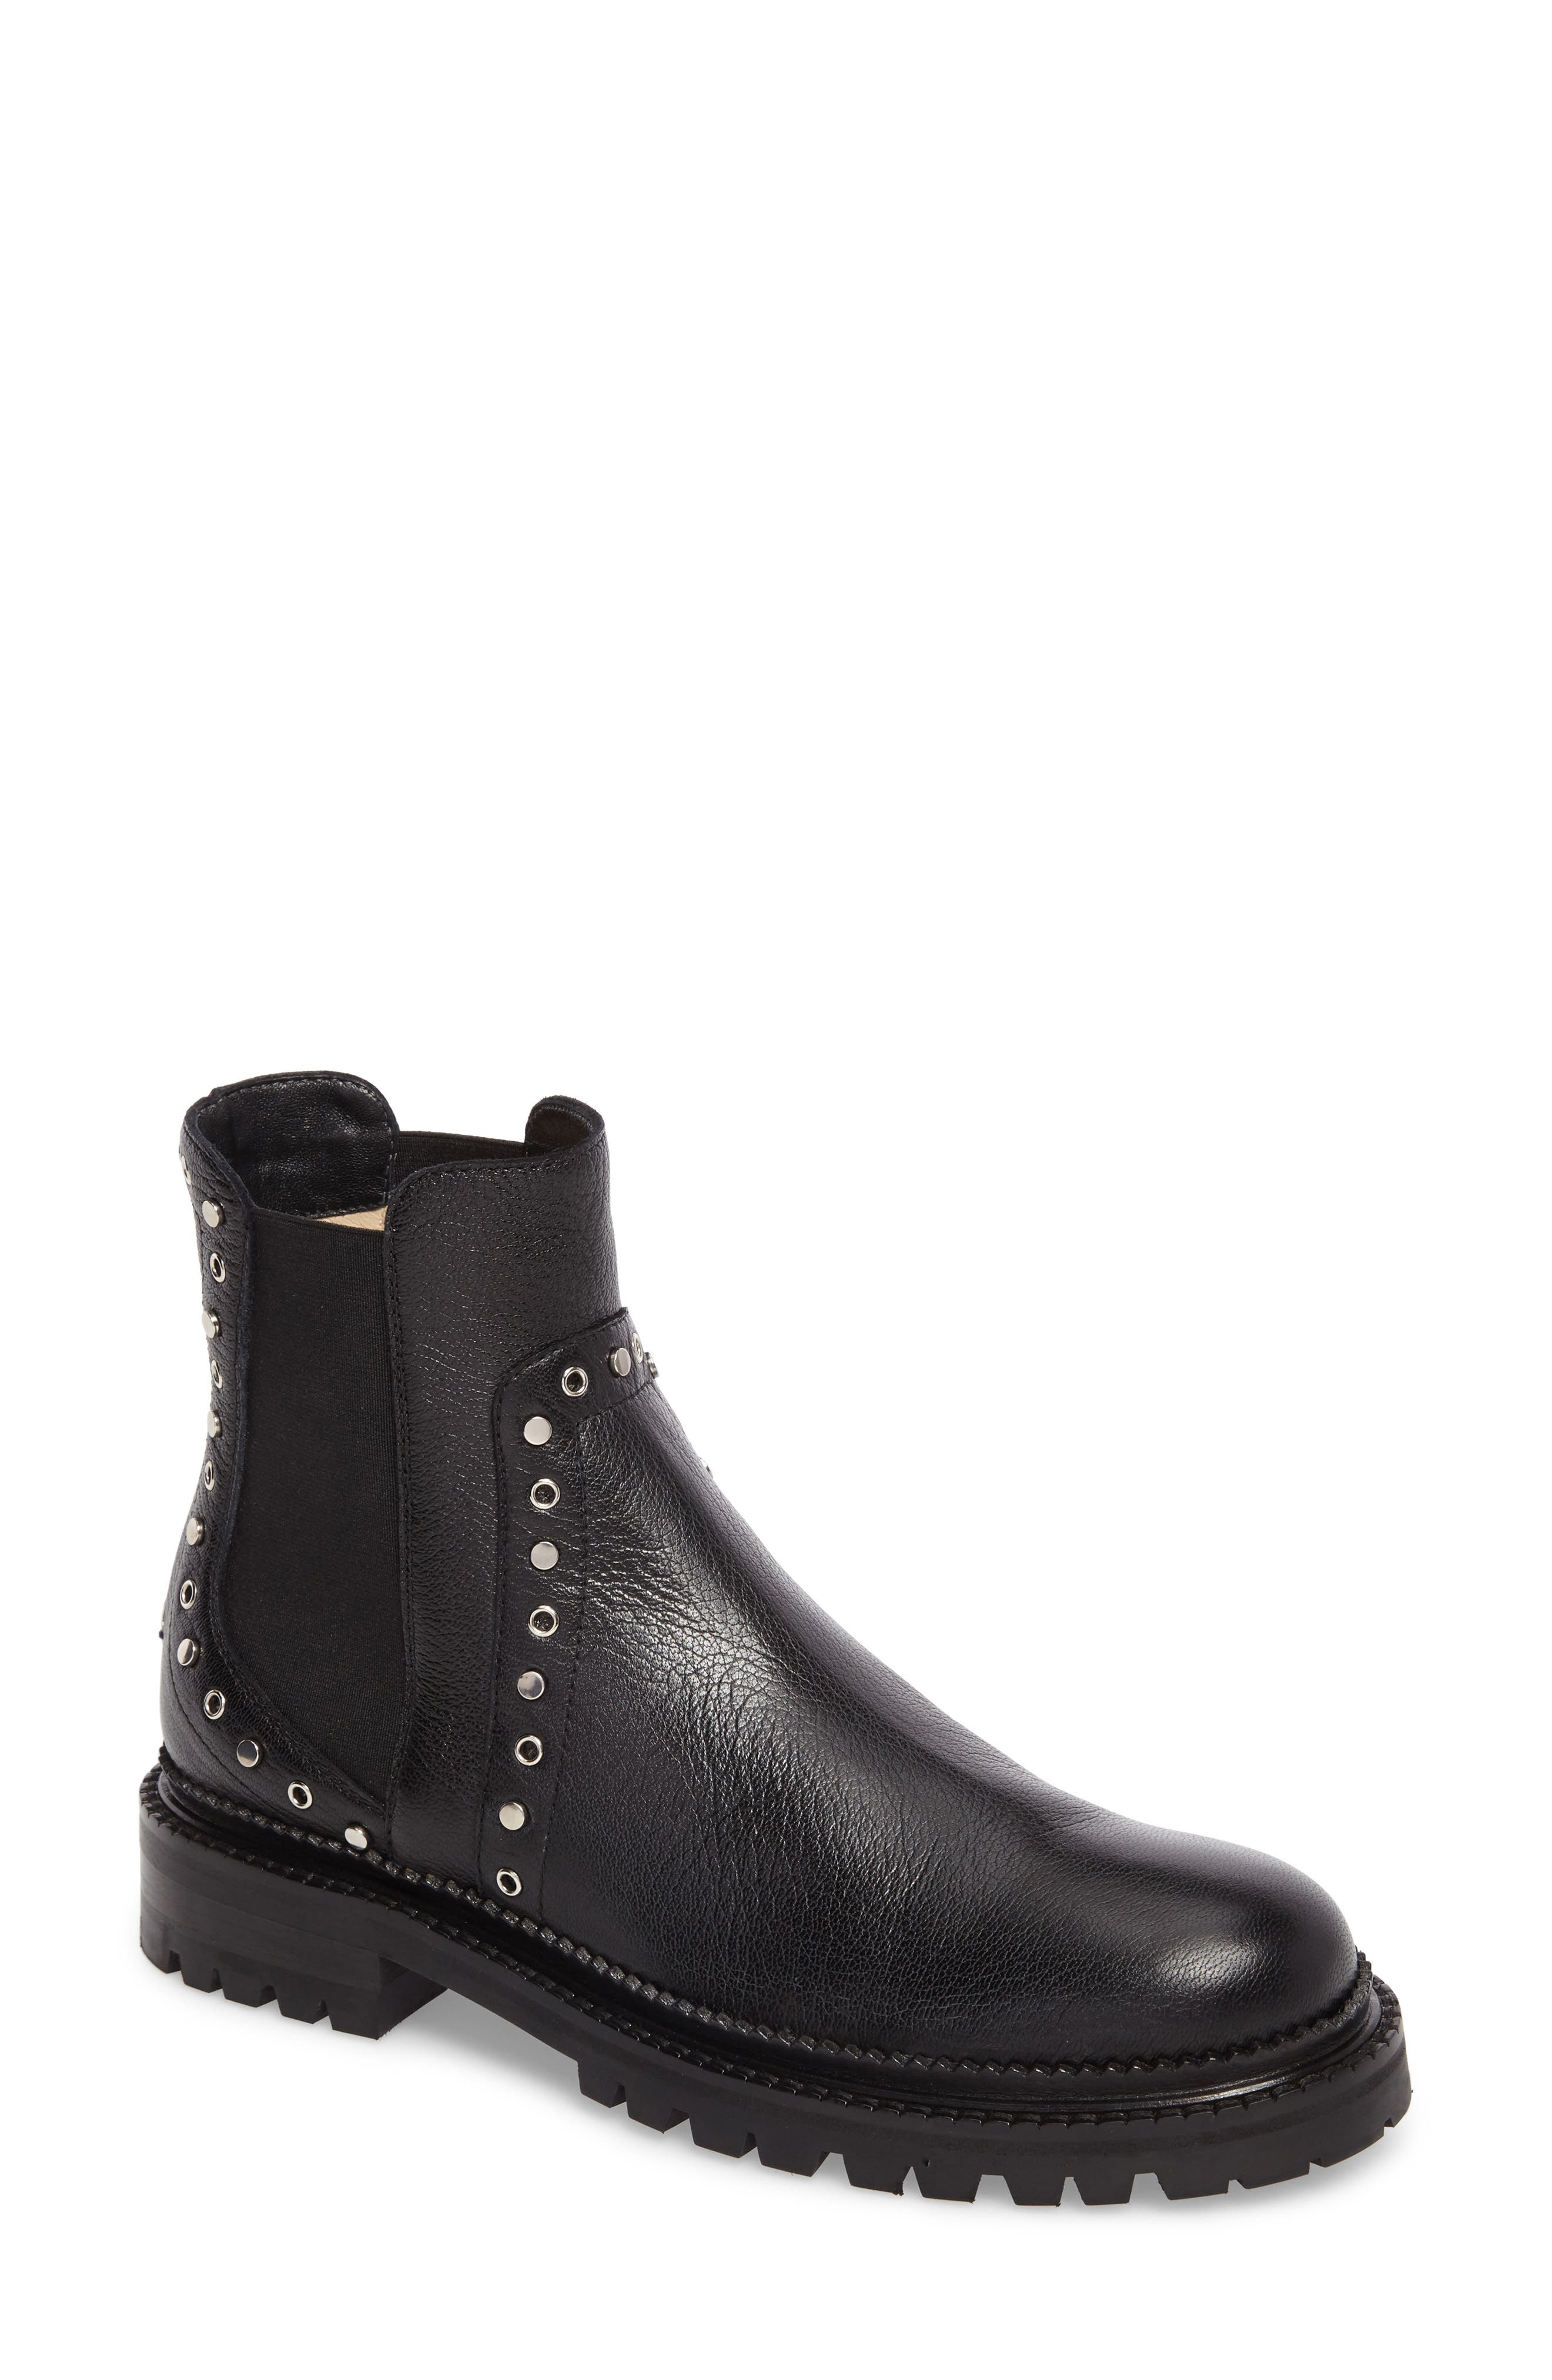 Main Image - Jimmy Choo Burrow Chelsea Boot (Women)